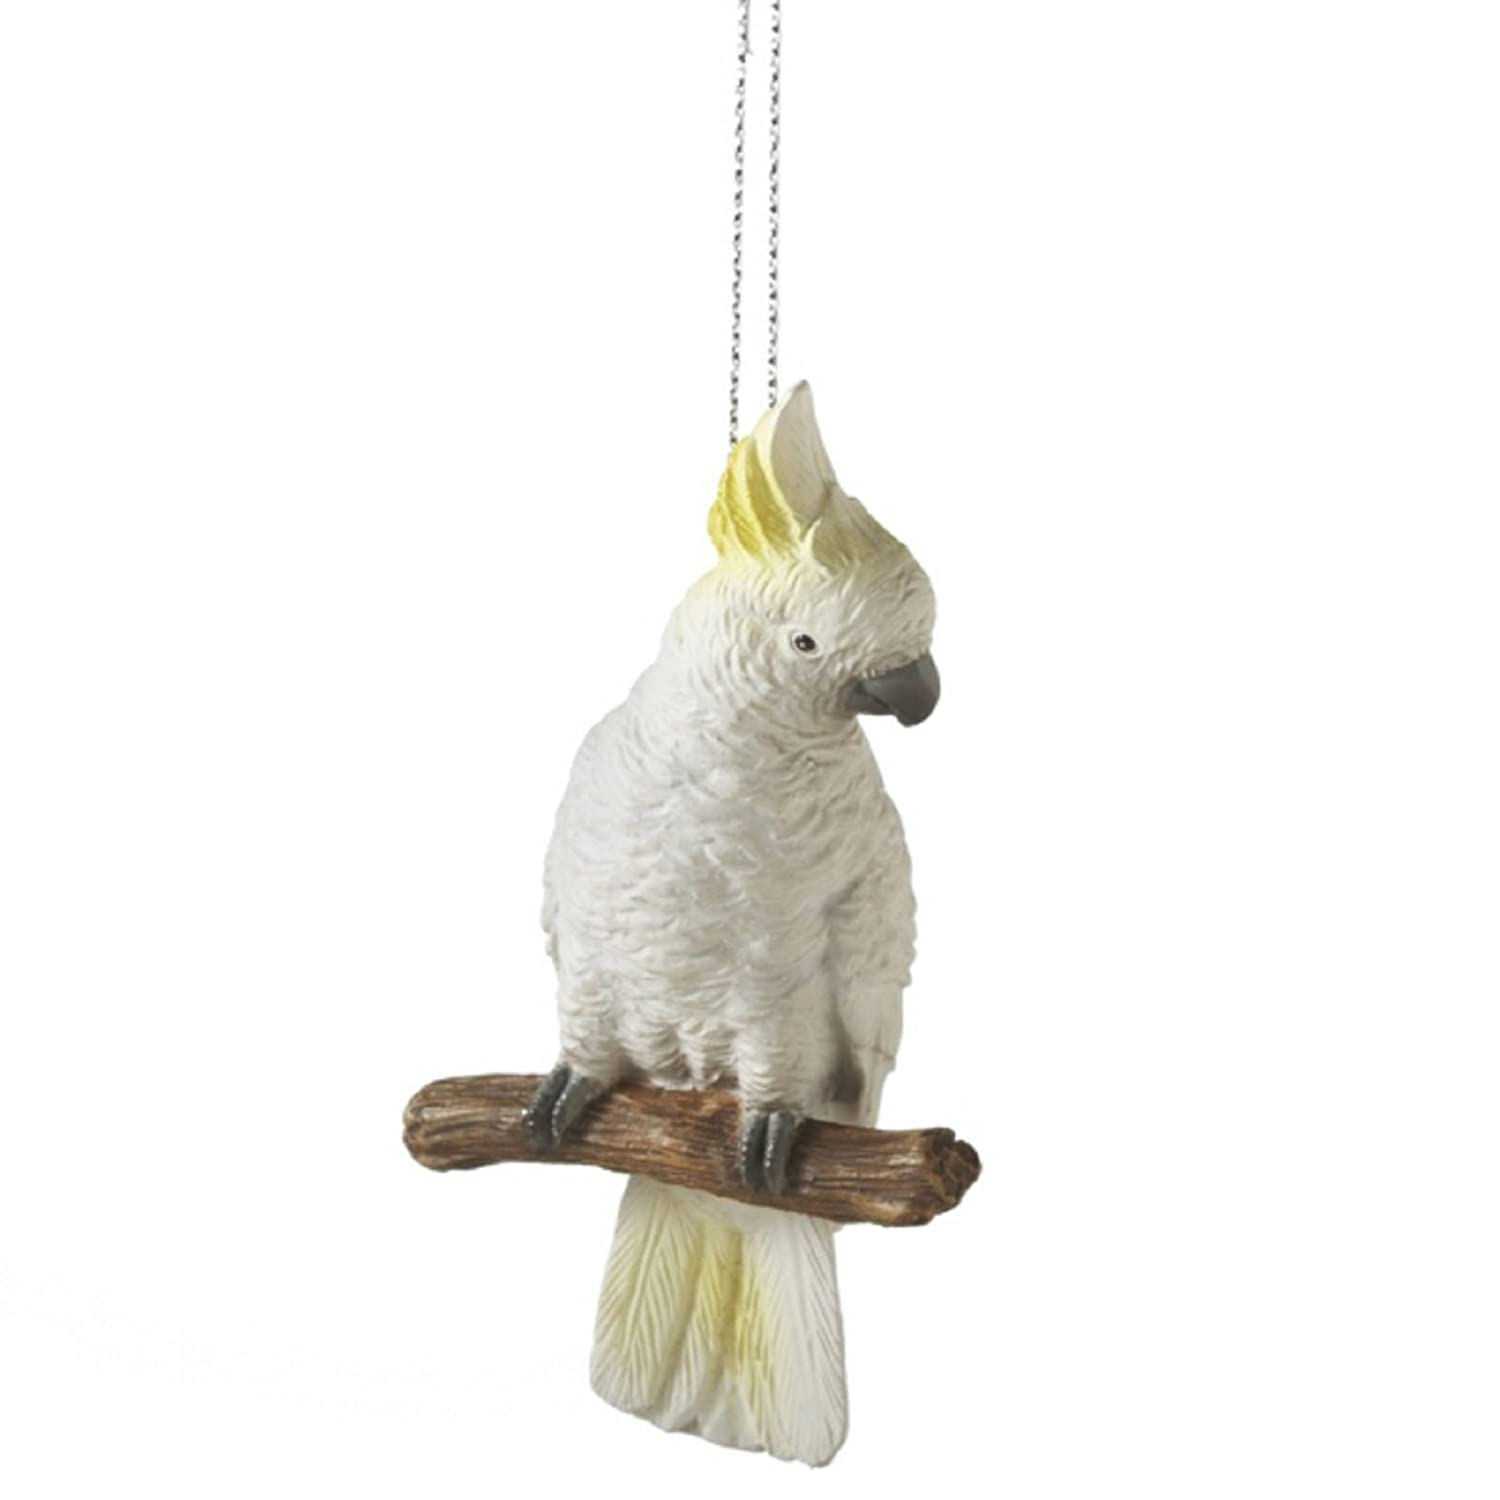 Resin Cockatoo Bird Christmas Ornament